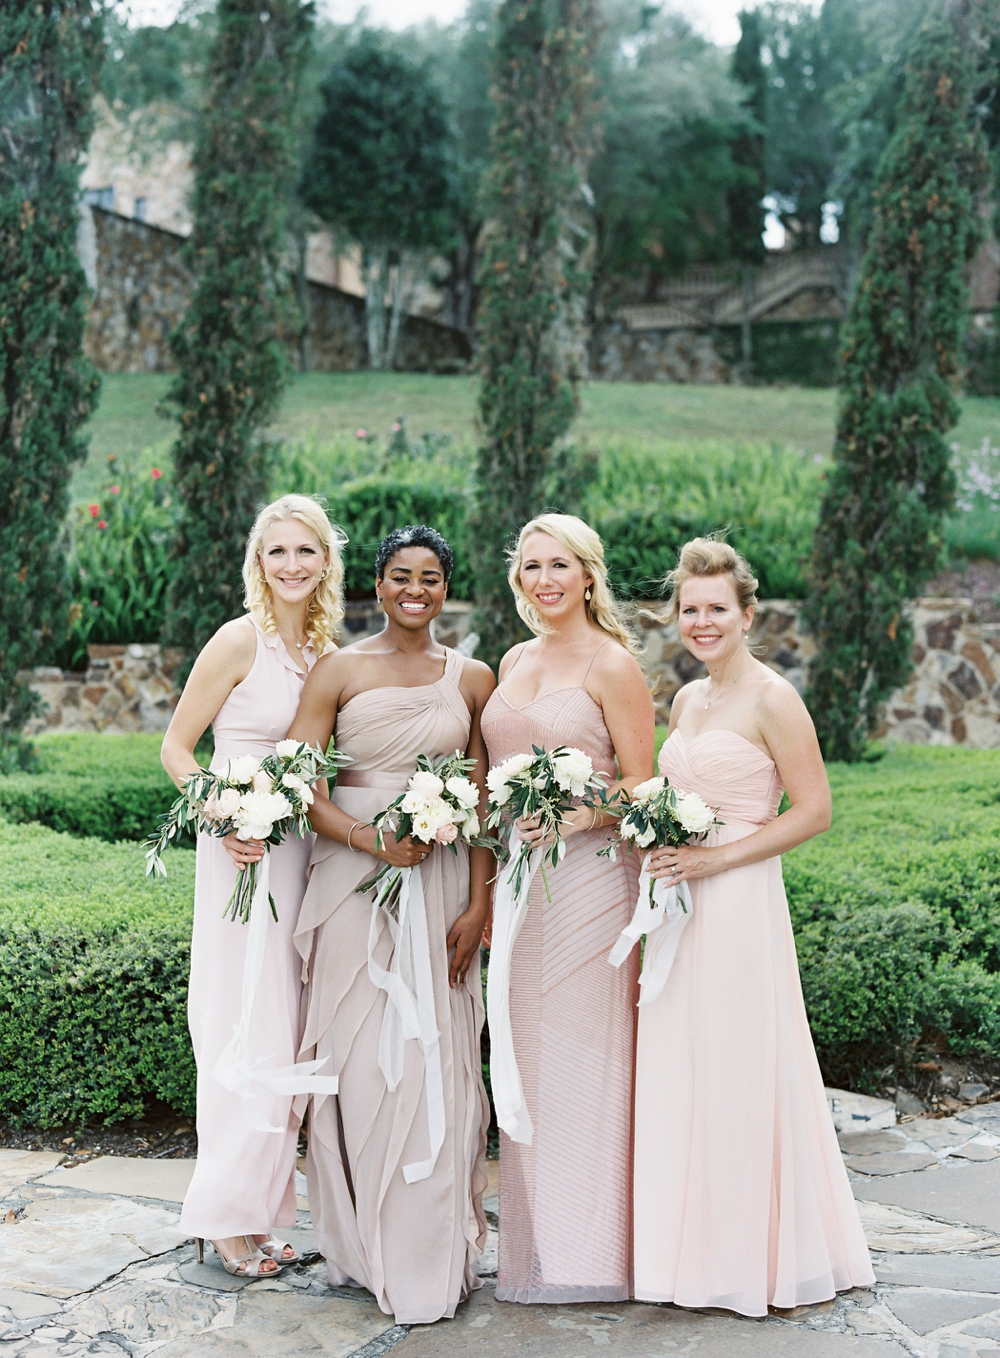 Vicki Grafton Photography - Fine Art Film Wedding Photographer - Bella Collina Wedding_0043.jpg